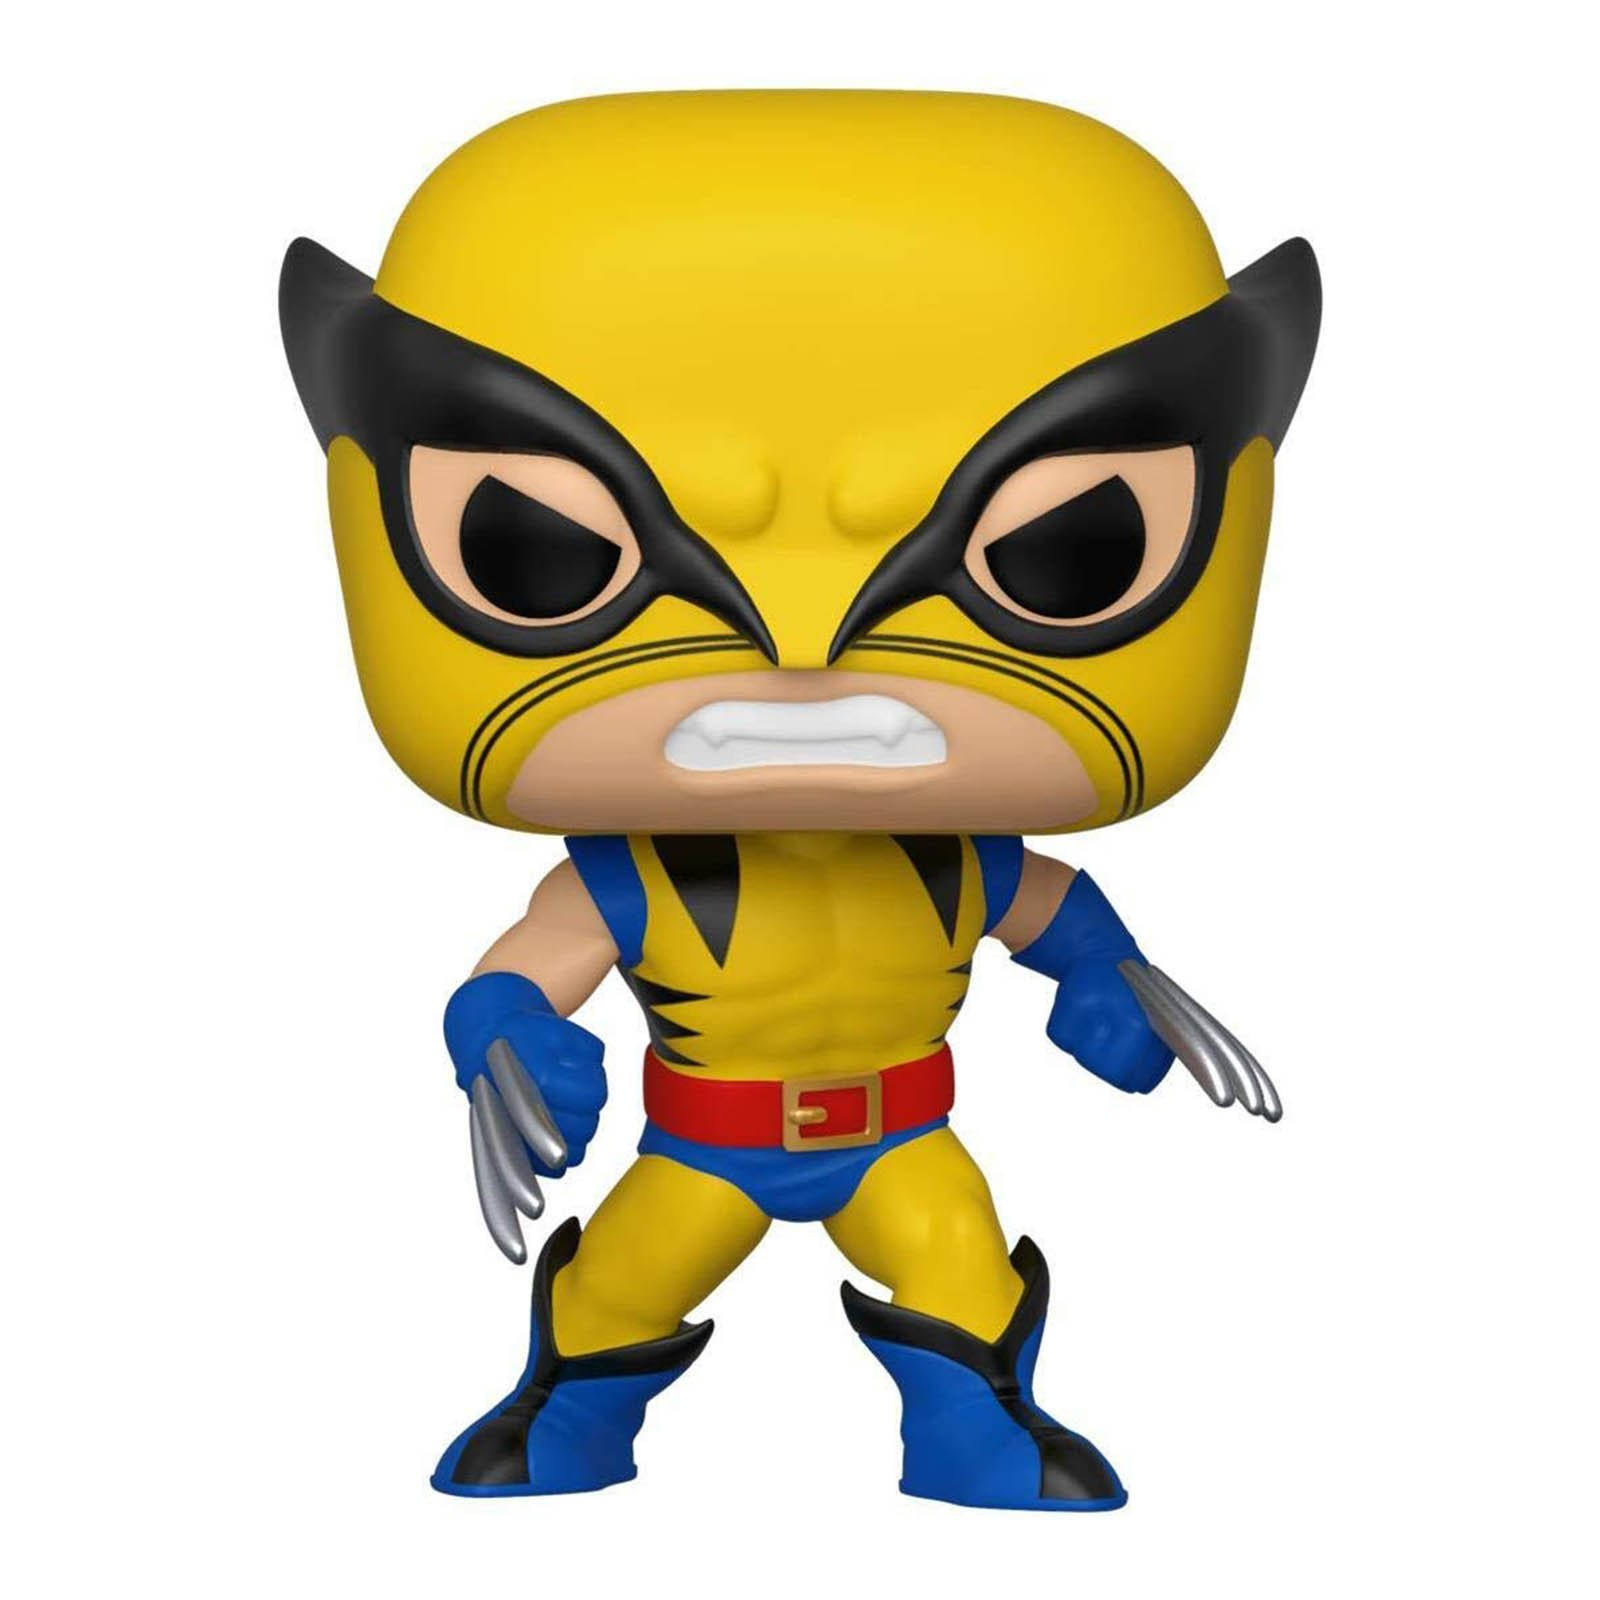 Funko Pop! Marvel: Marvel 80TH Vinyl Figure - Wolverine